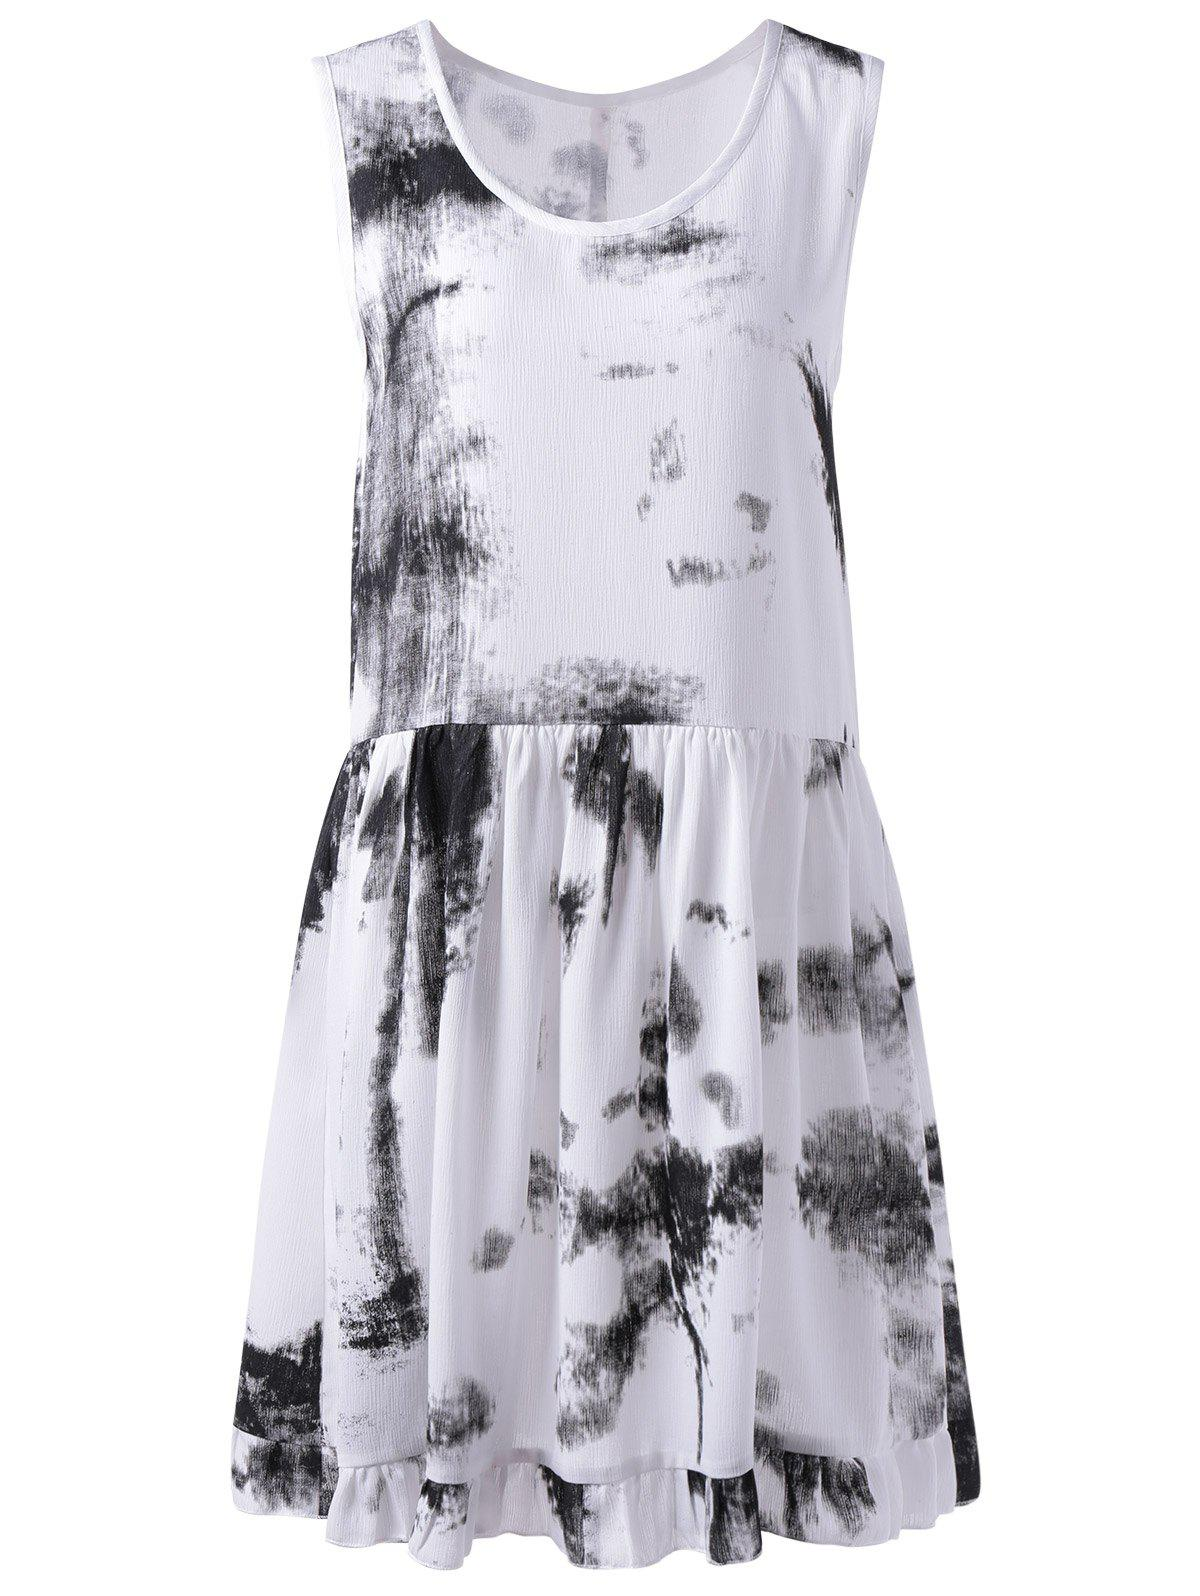 Trendy Tie Dye U Neck Sleeveless Dress For Women - BLACK S